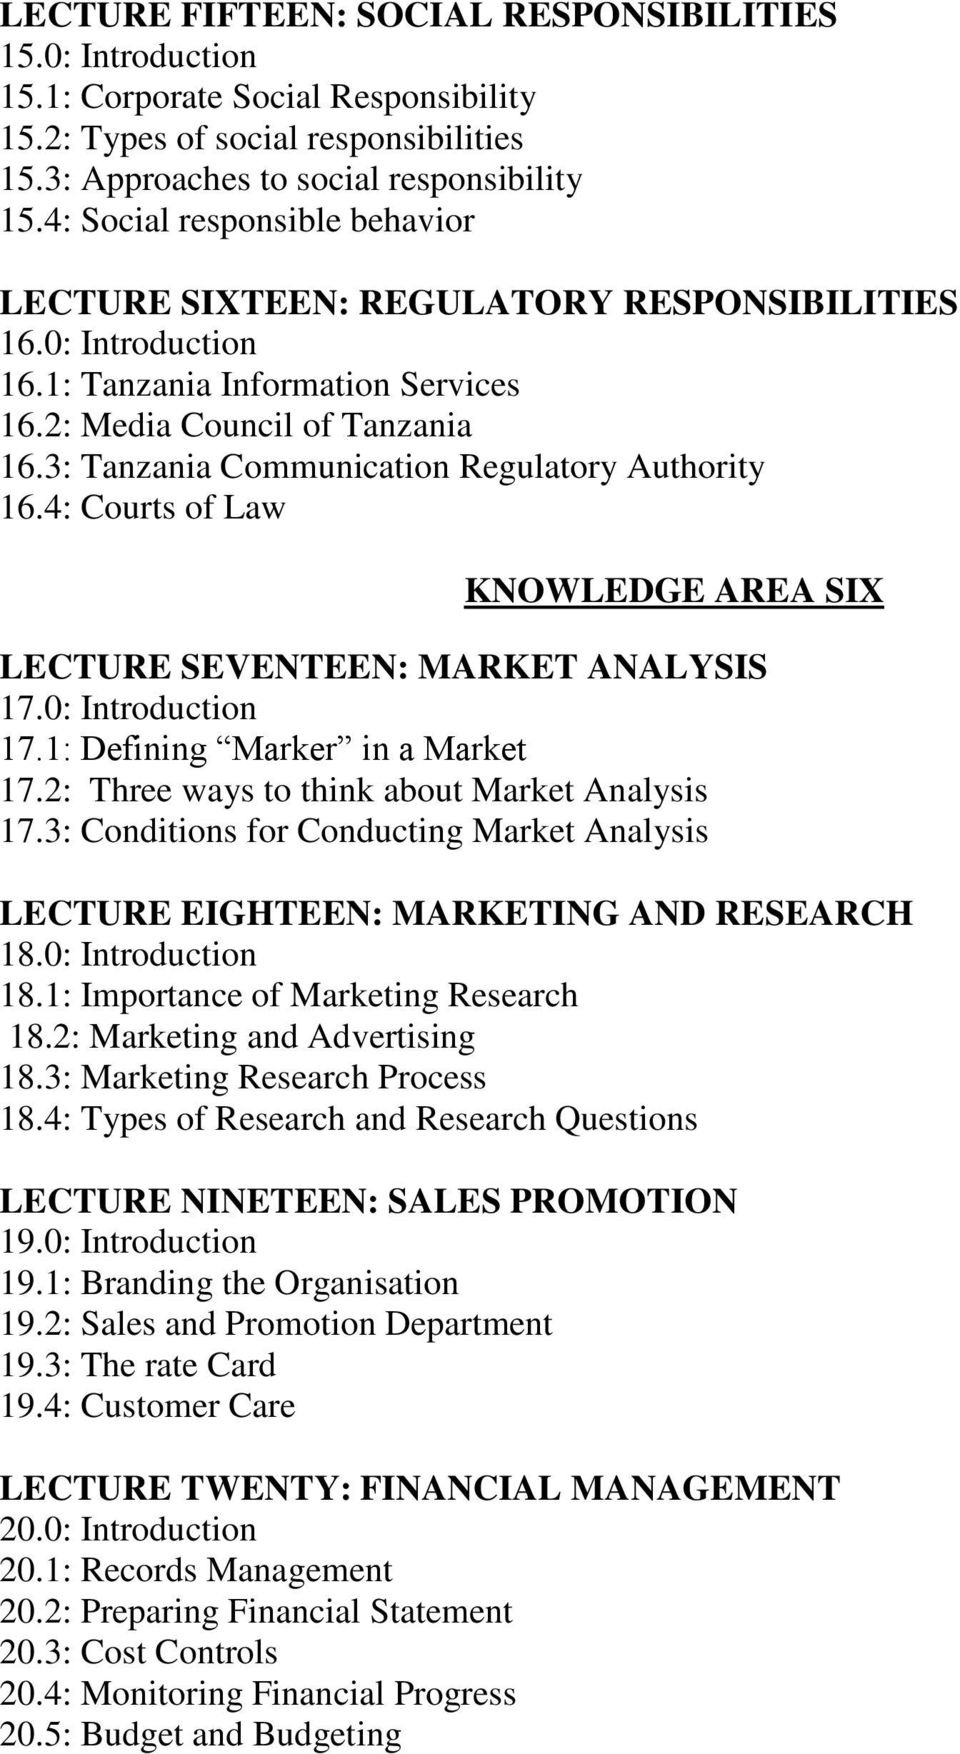 3: Tanzania Communication Regulatory Authority 16.4: Courts of Law KNOWLEDGE AREA SIX LECTURE SEVENTEEN: MARKET ANALYSIS 17.0: Introduction 17.1: Defining Marker in a Market 17.